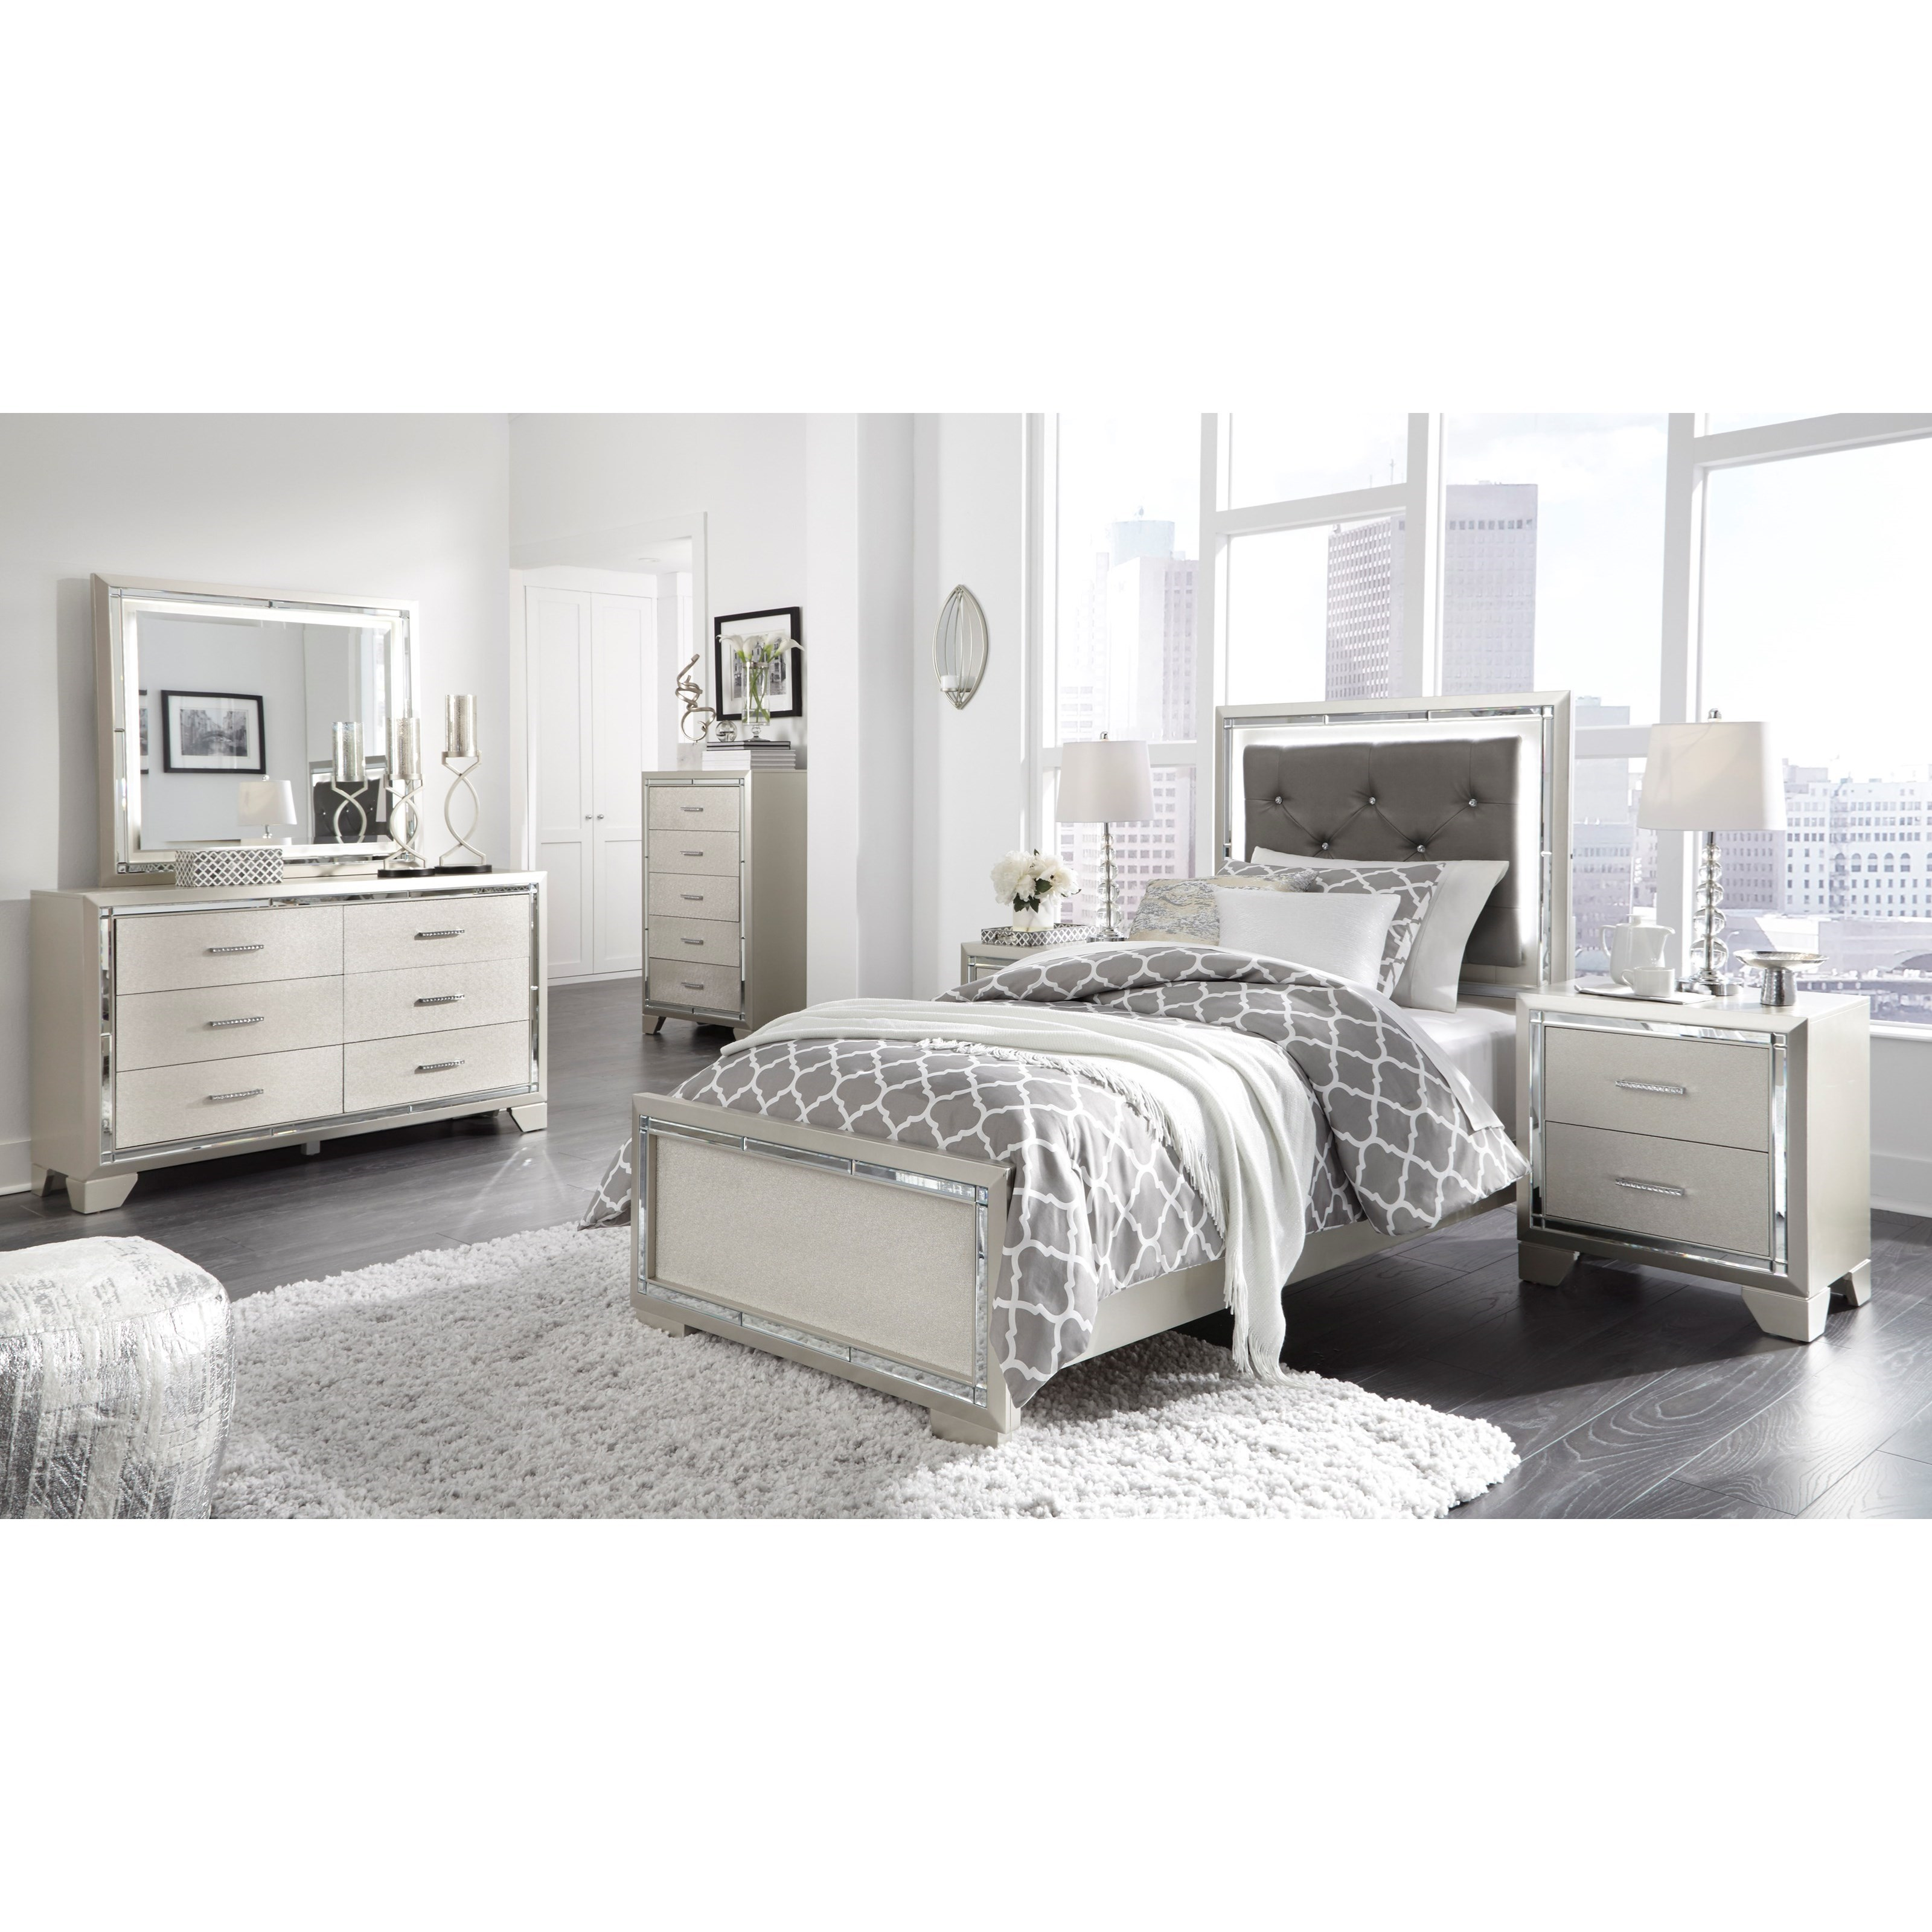 Lonnix Twin Bed Room Group by Ashley (Signature Design) at Johnny Janosik